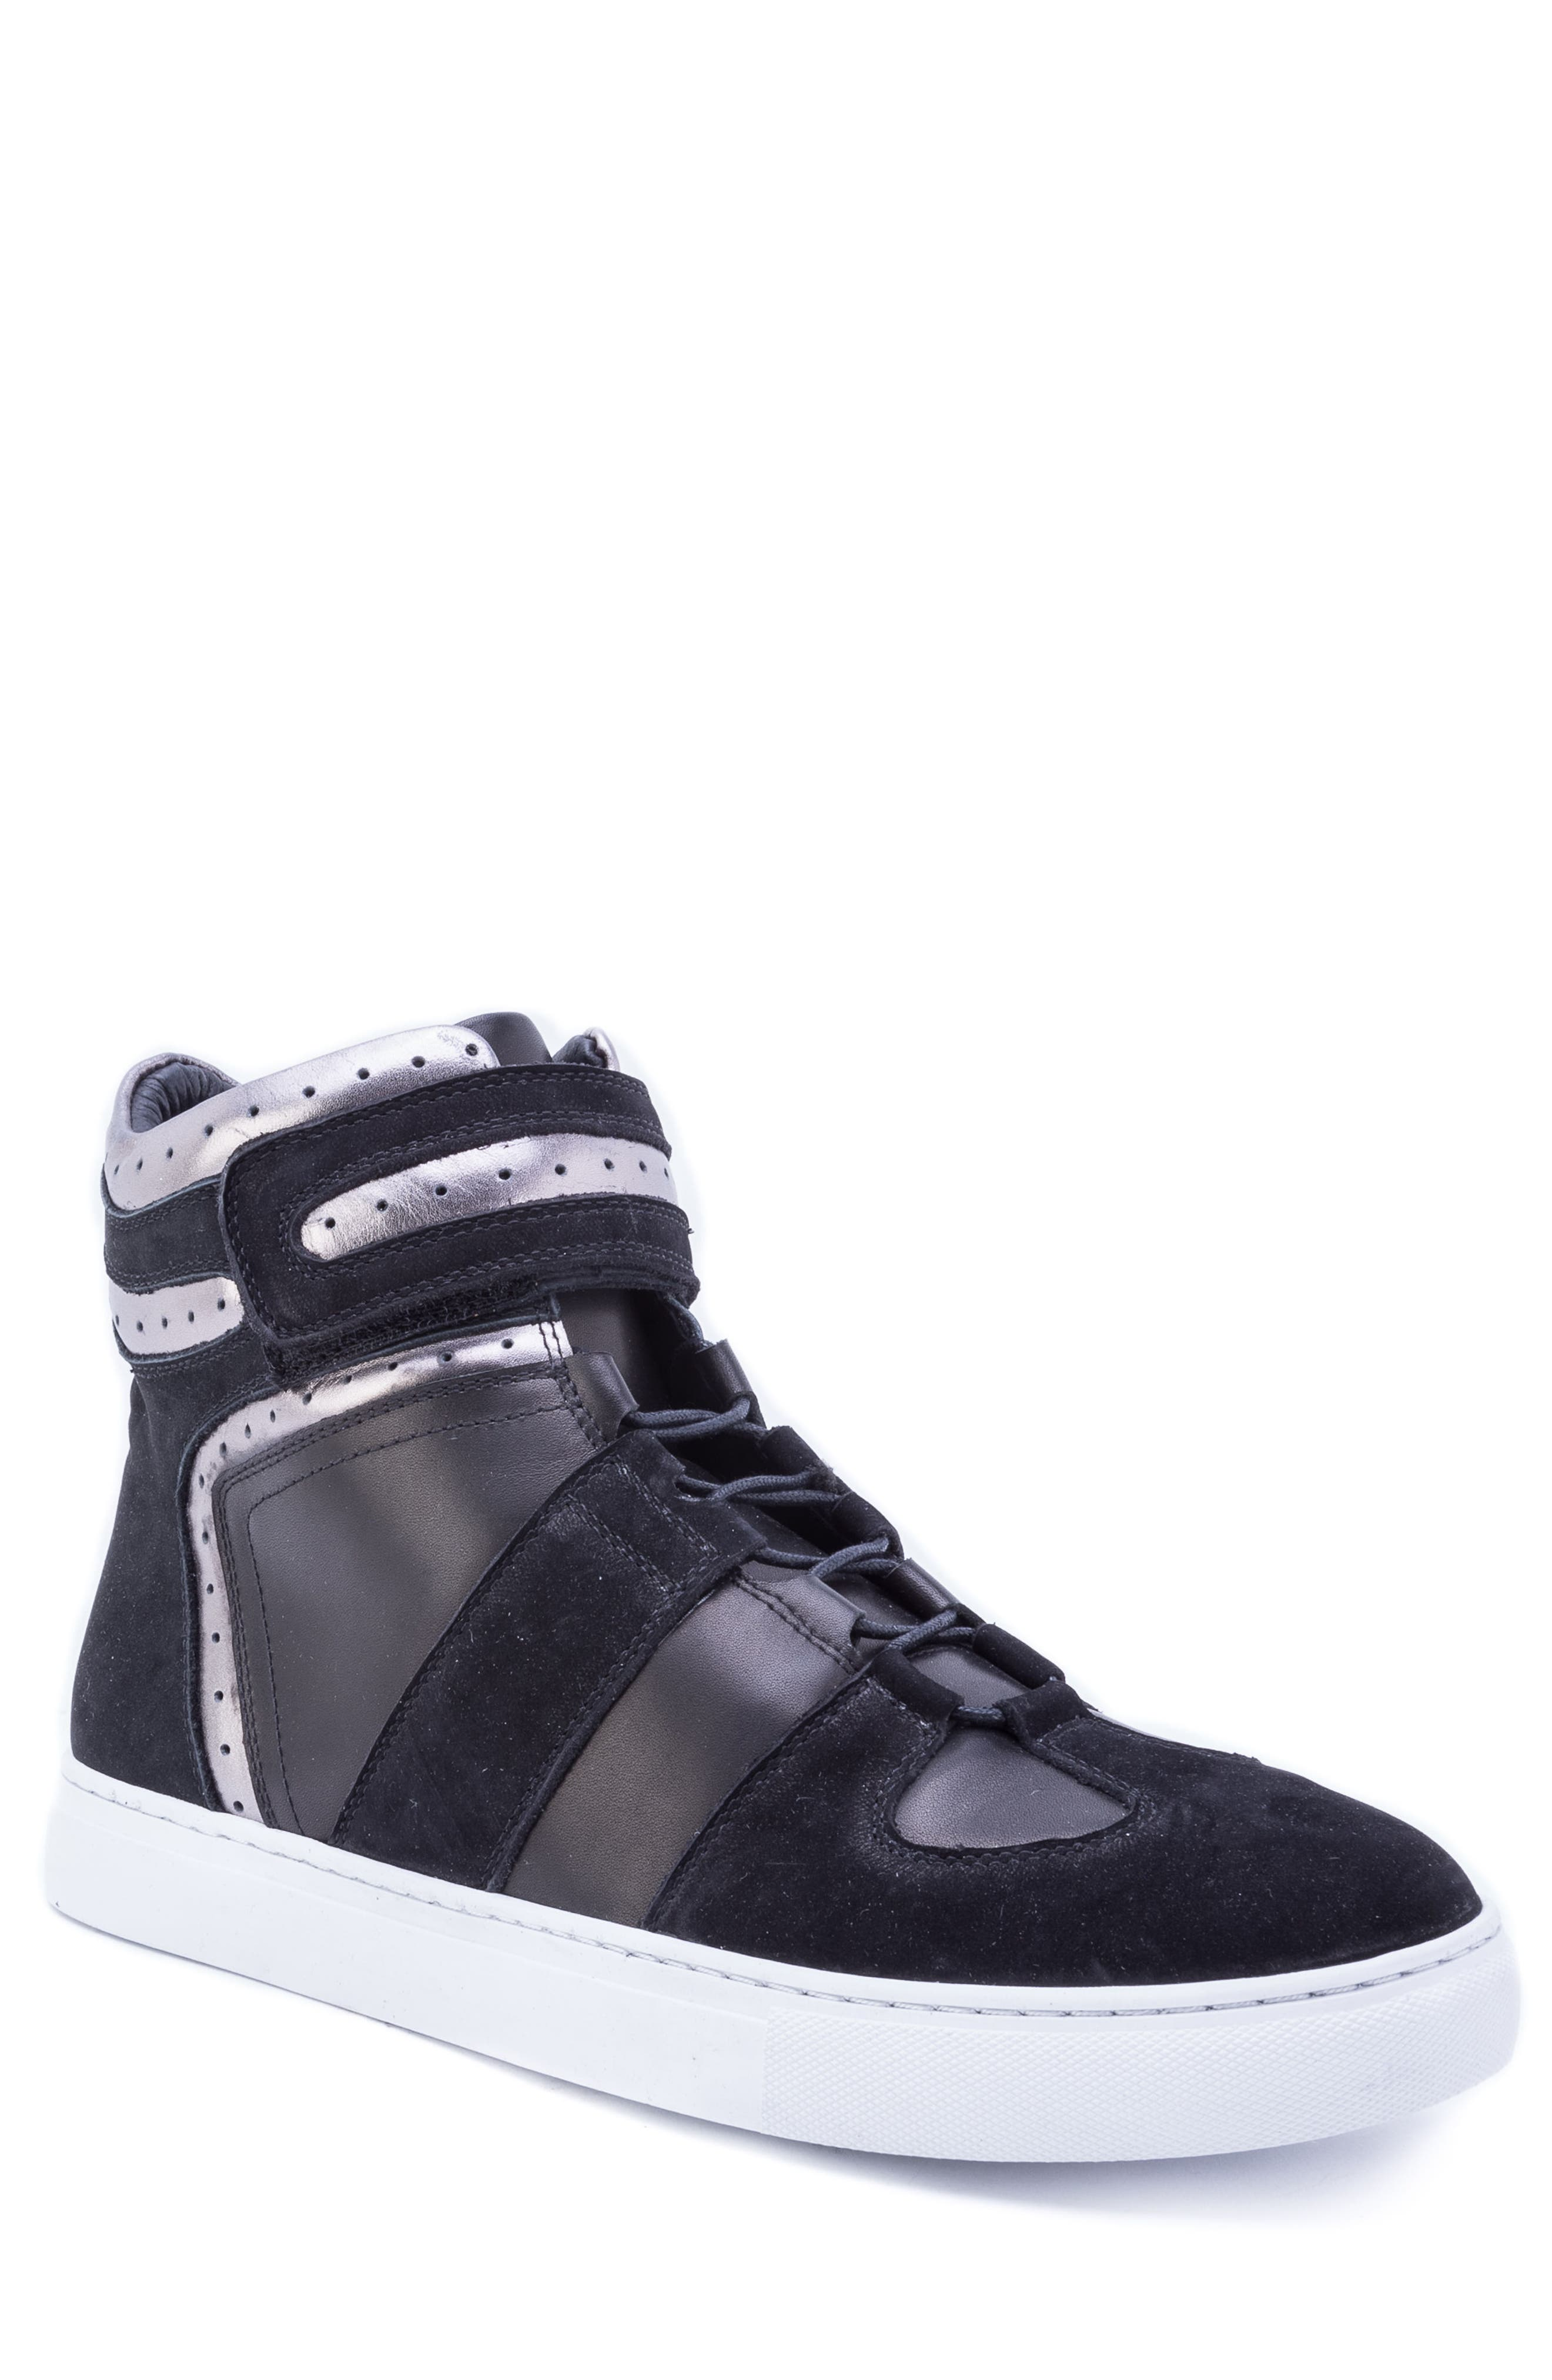 Belmondo High Top Sneaker,                             Main thumbnail 1, color,                             BLACK LEATHER/ SUEDE